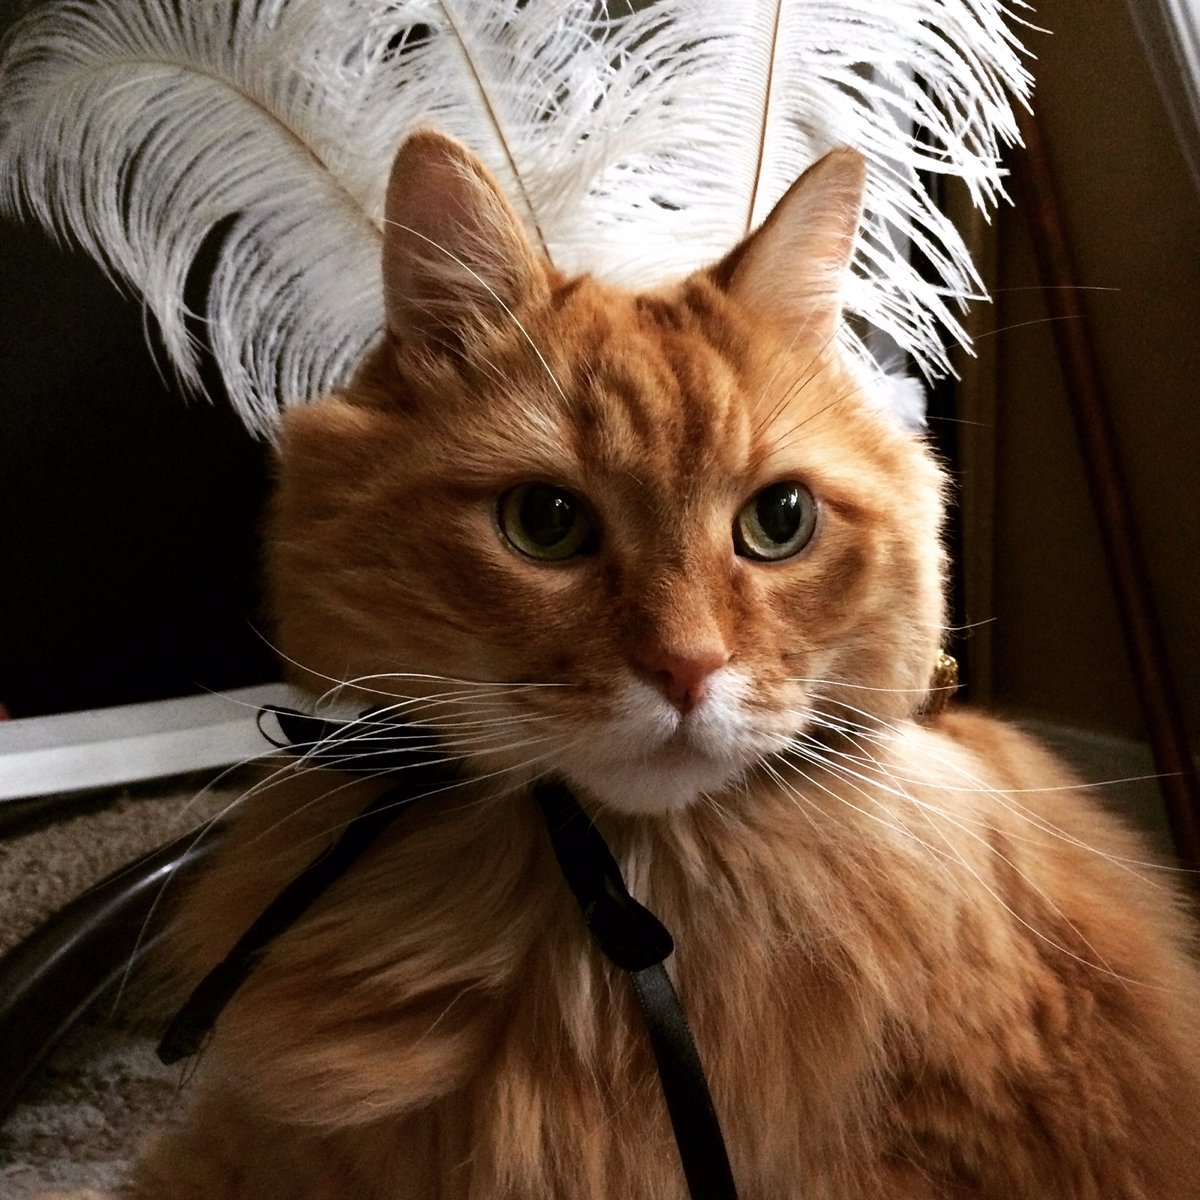 https://pbs.twimg.com/media/CaxgyHjUAAAab7K.jpg